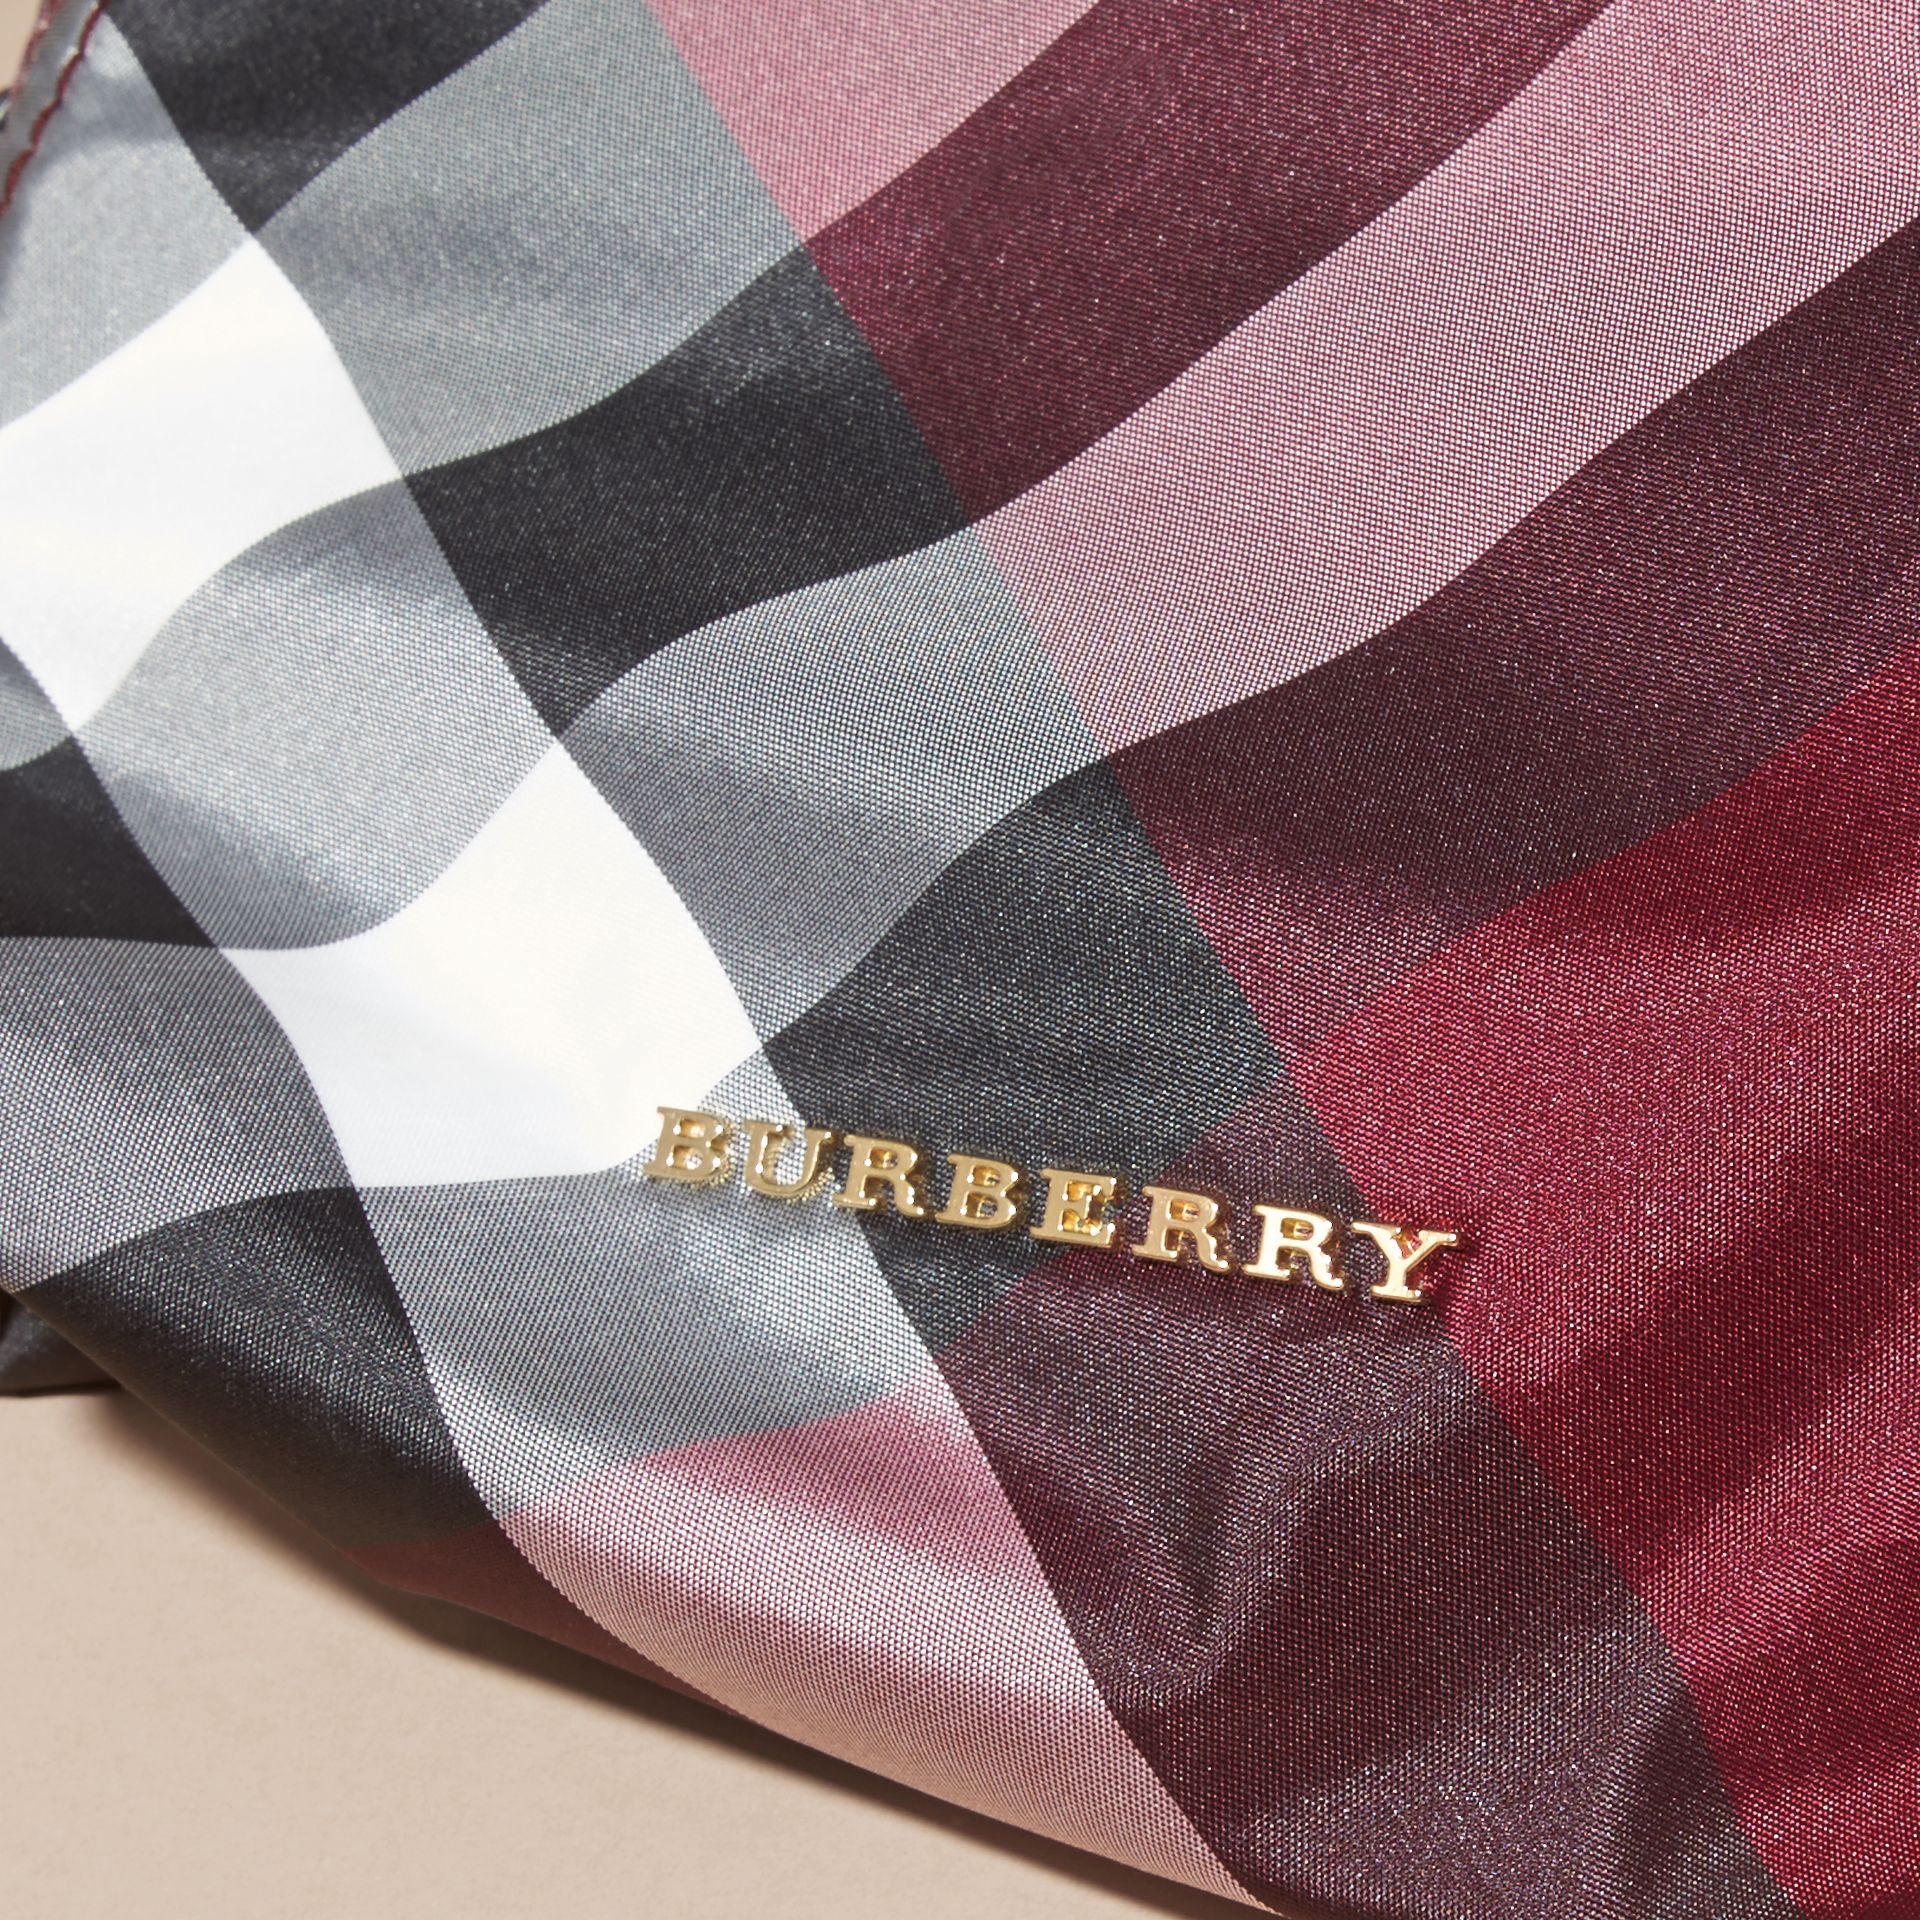 Medium Zip-top Check Technical Pouch in Plum - Women | Burberry - gallery image 2